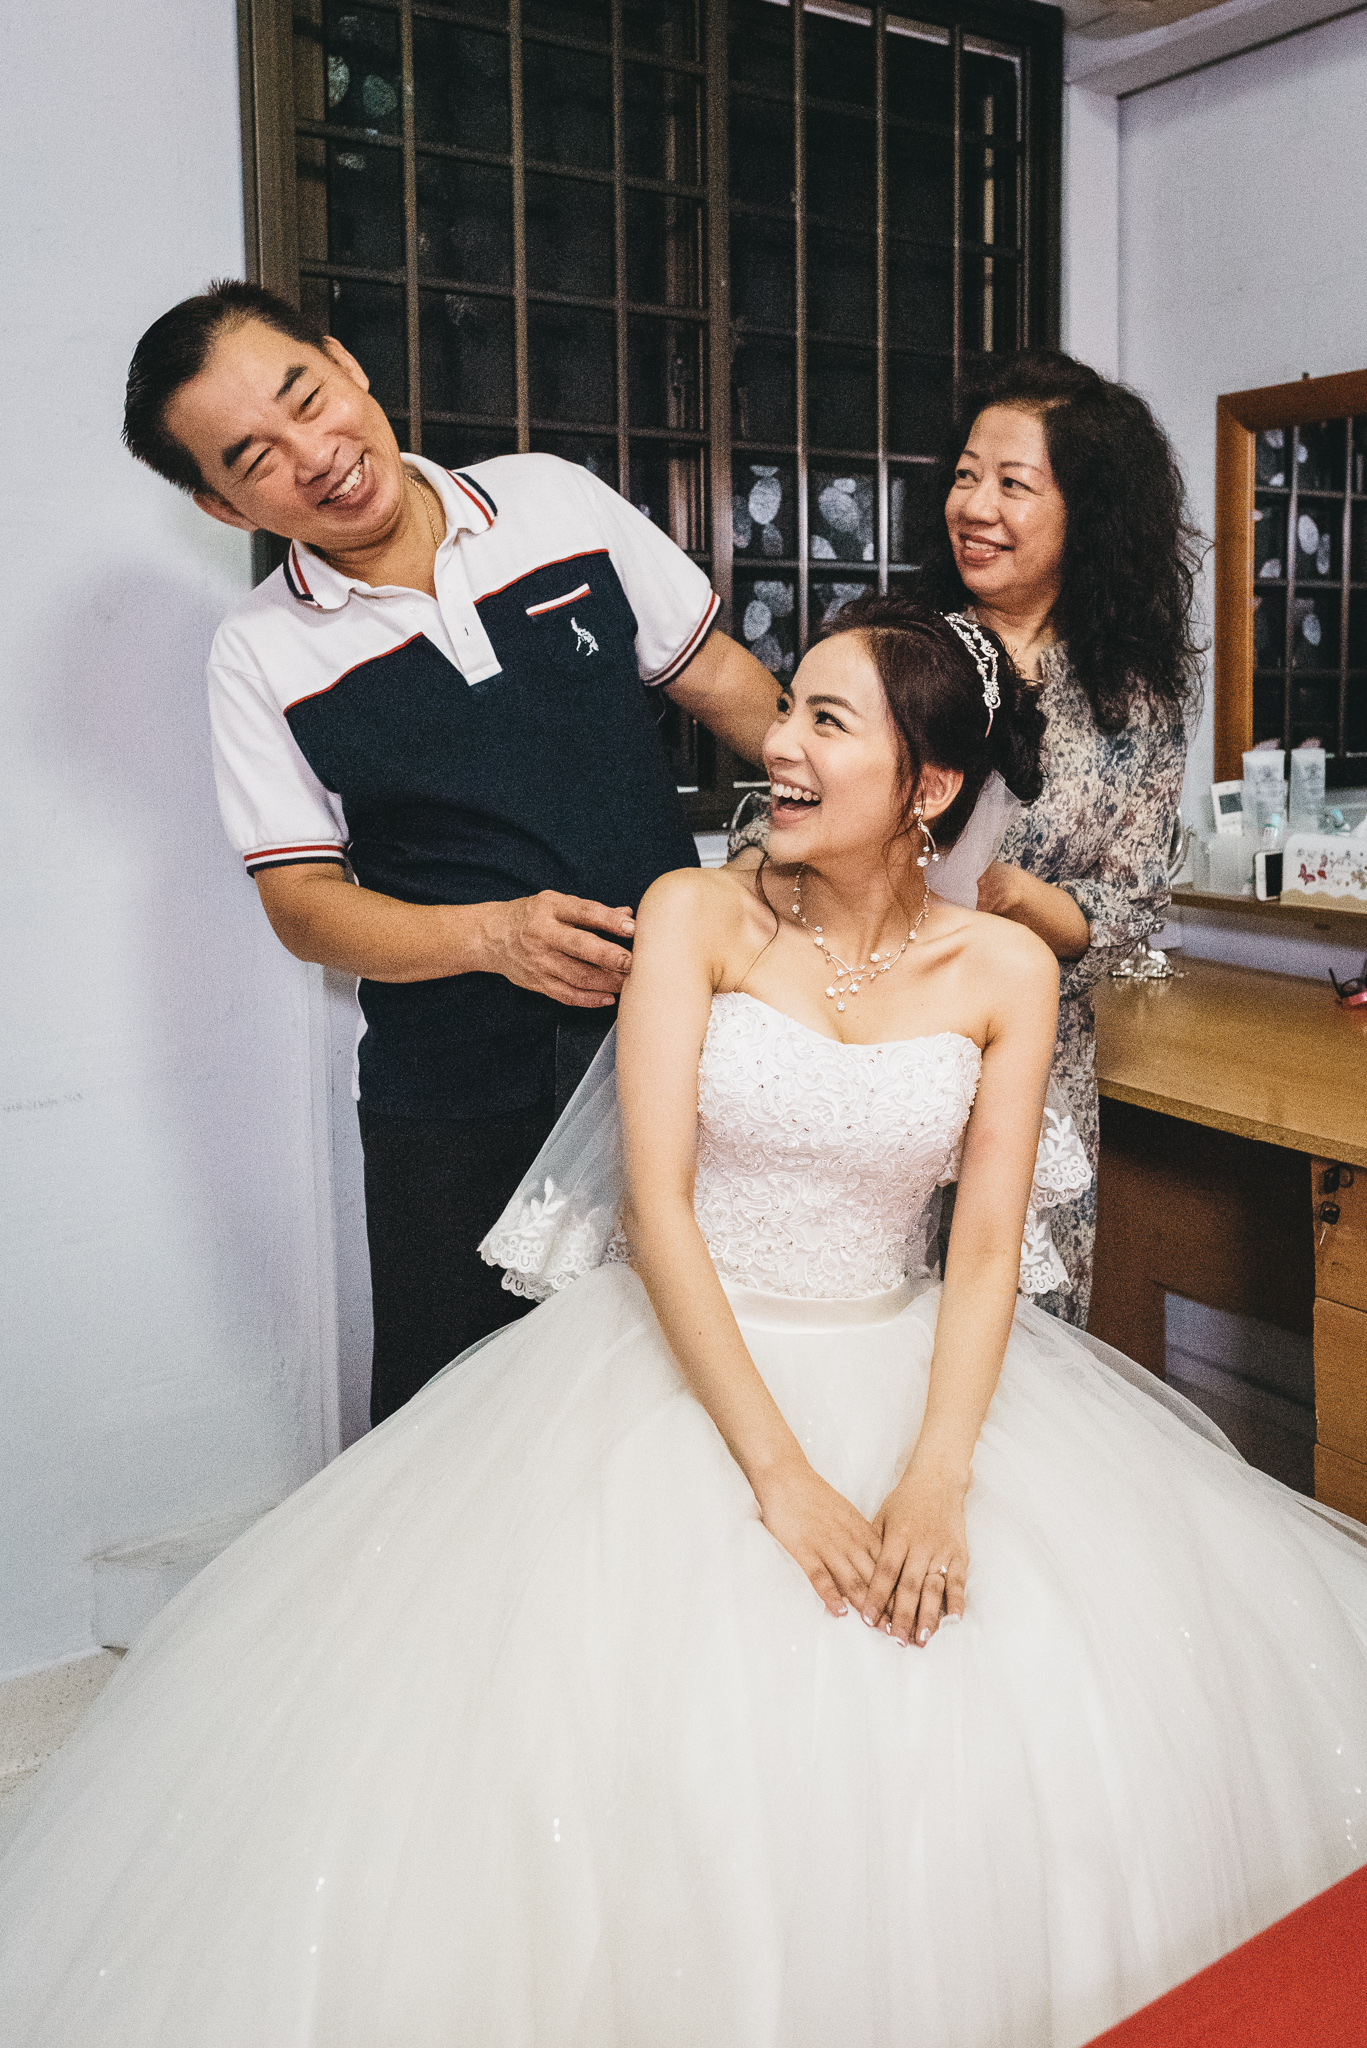 Fiona & Terence Wedding Day Highlights (resized for sharing) - 018.jpg